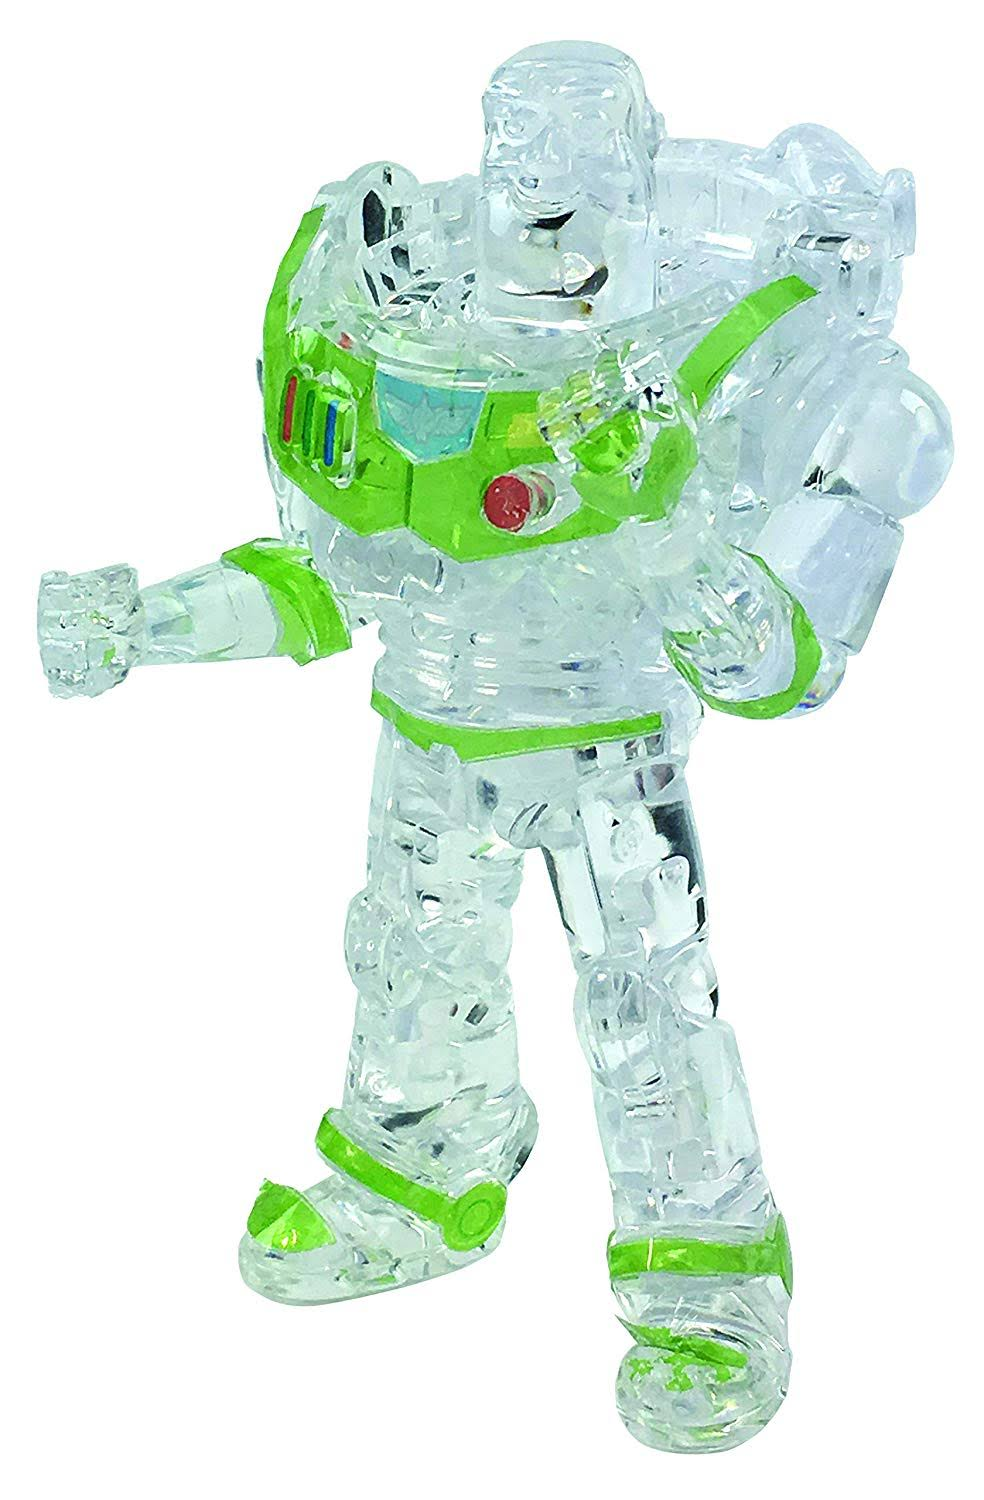 Bepuzzled Disney Crystal Puzzle - Buzz Lightyear